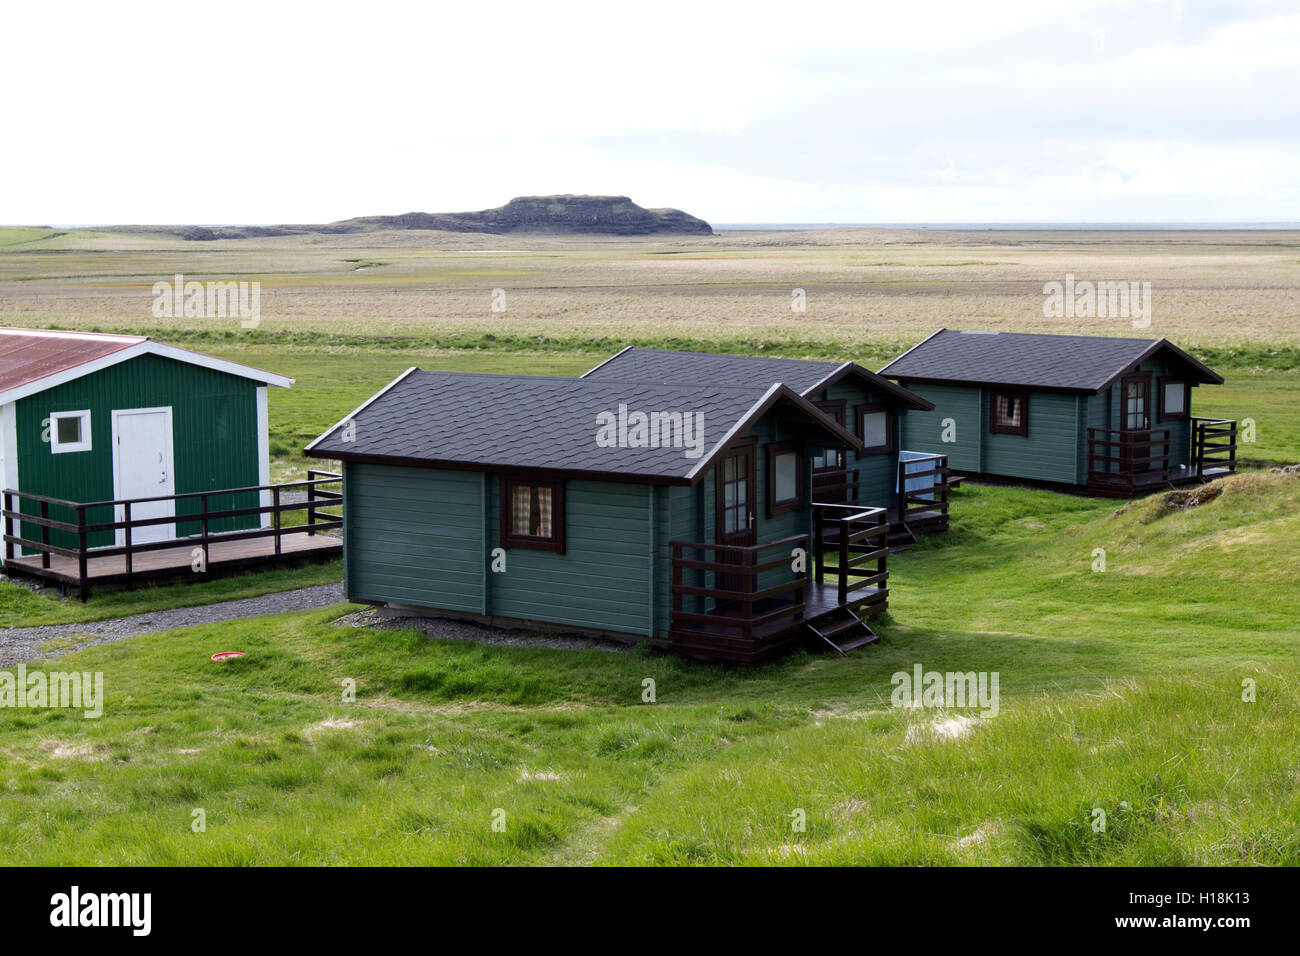 summer tourist chalet camping accommodation in southern iceland - Stock Image